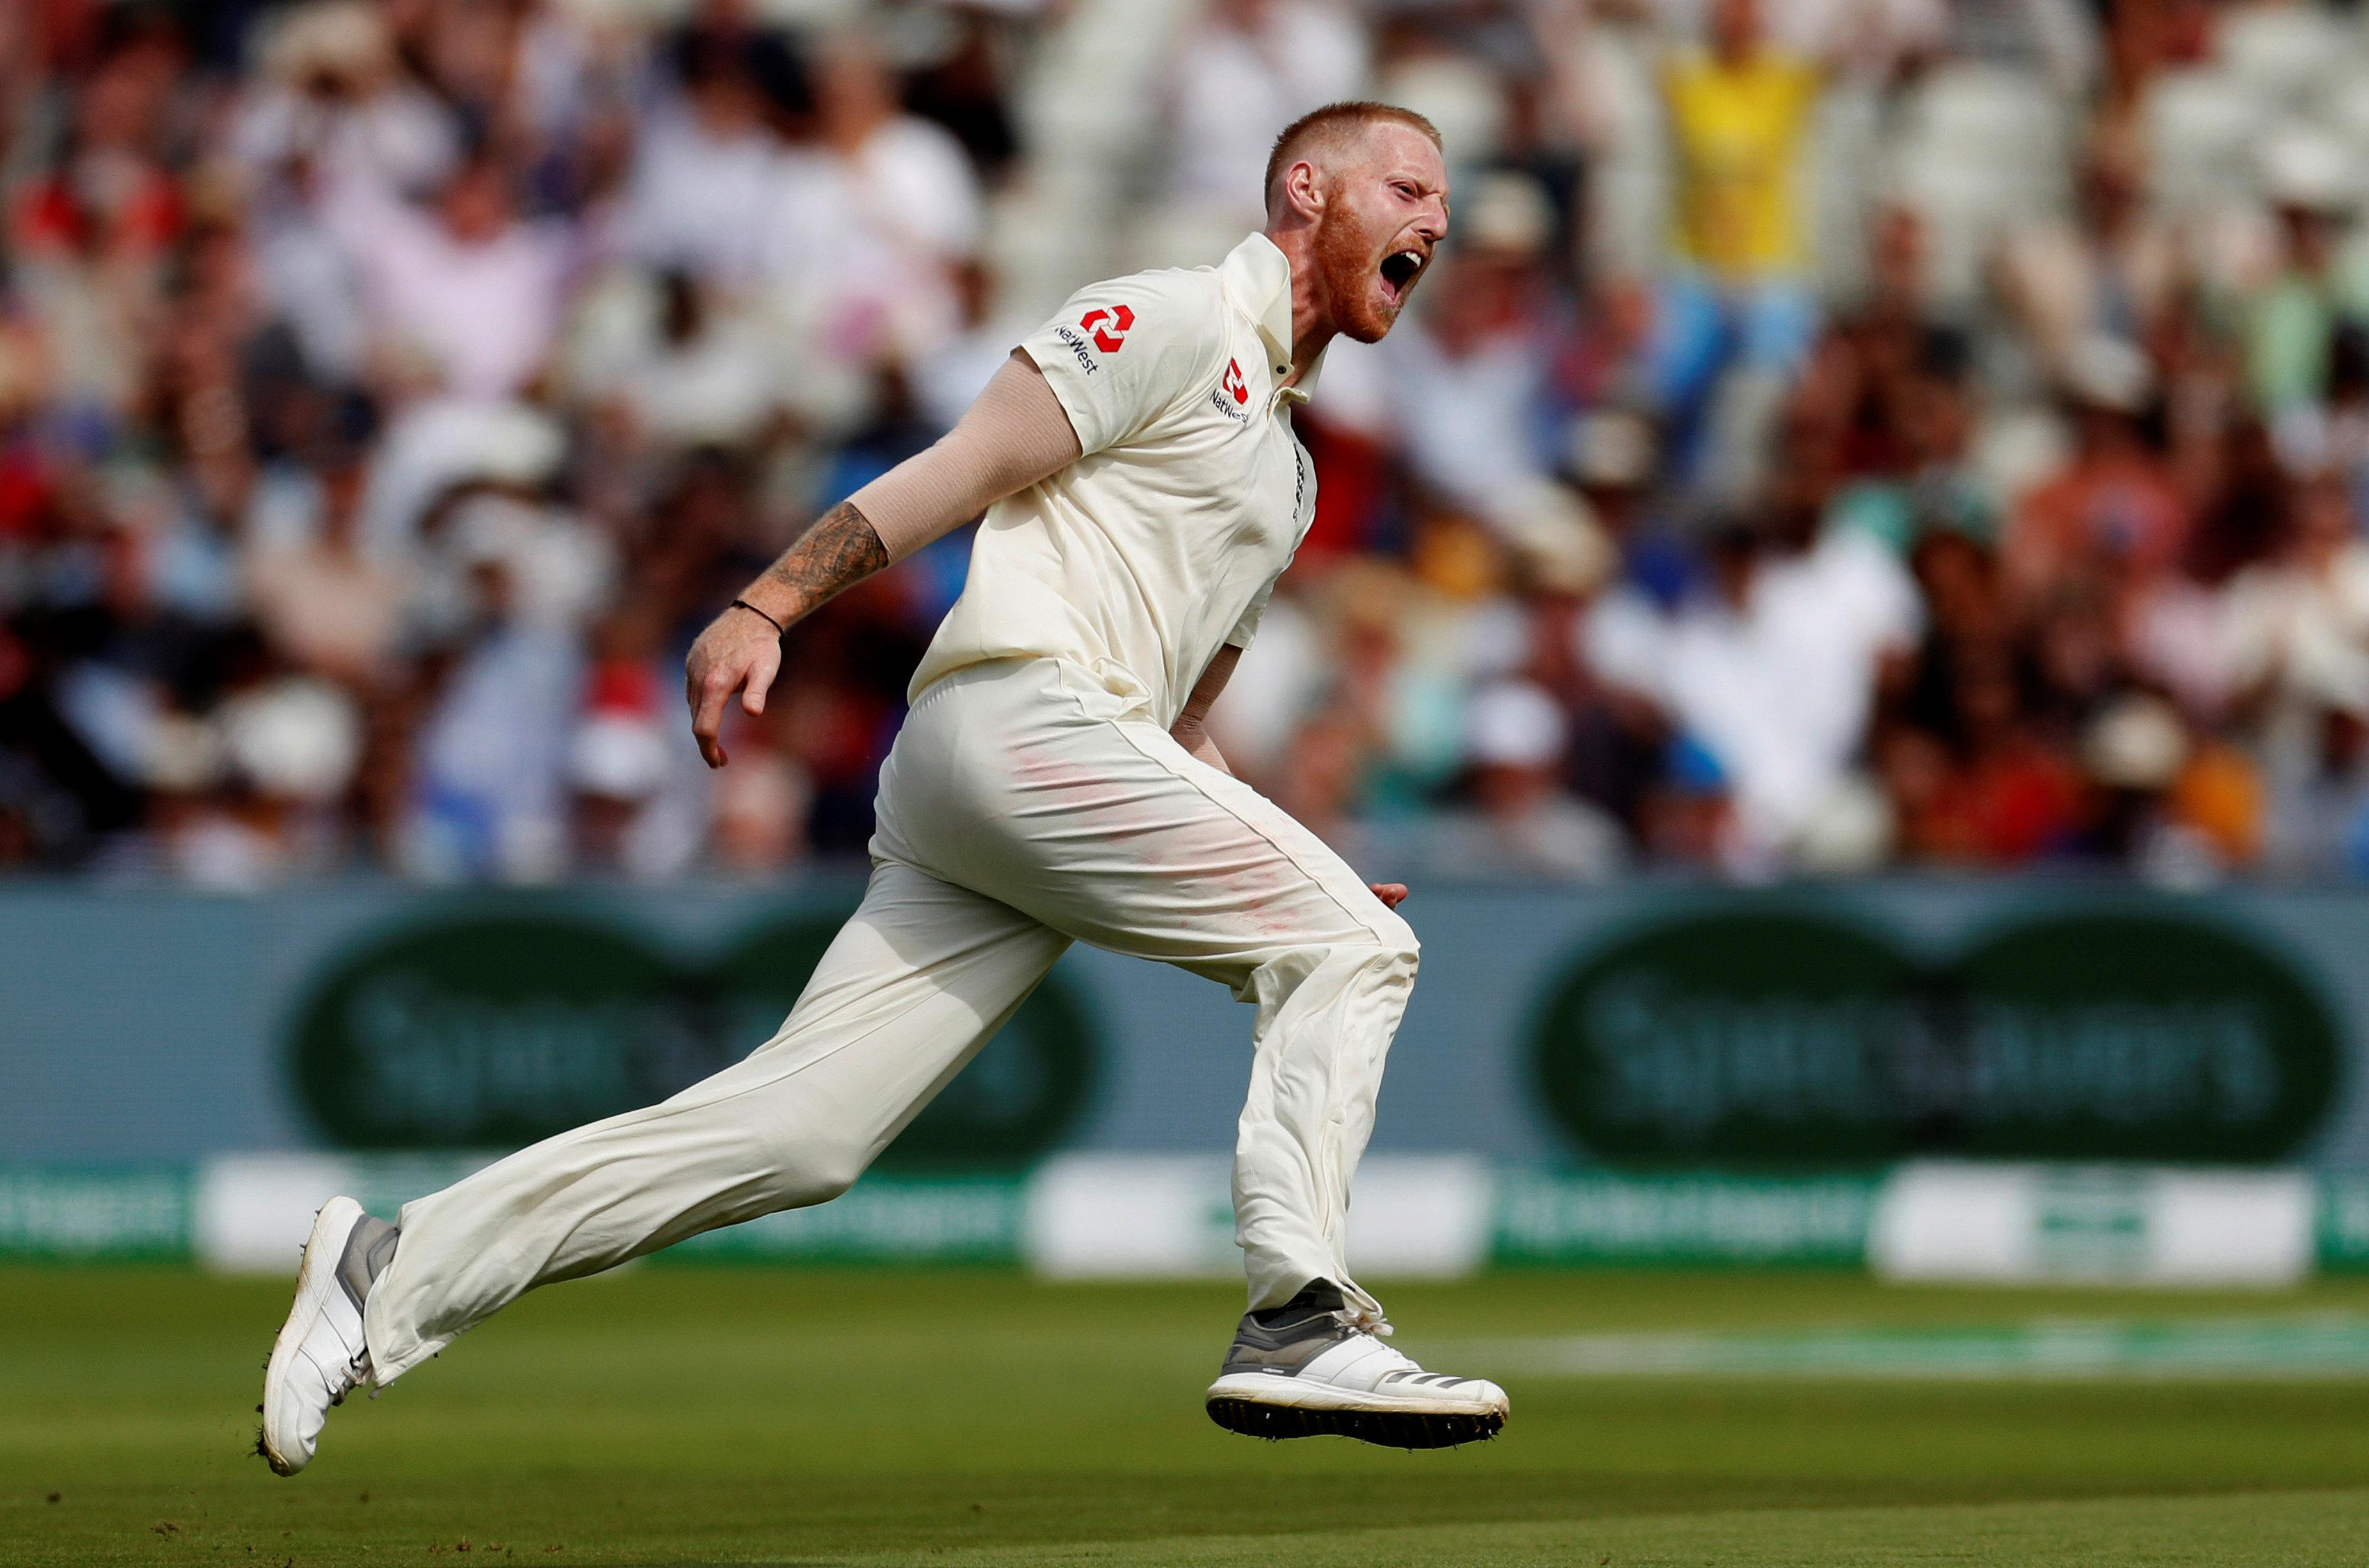 Ben Stokes played in the thrilling First Test, but missed the Second due to his trial